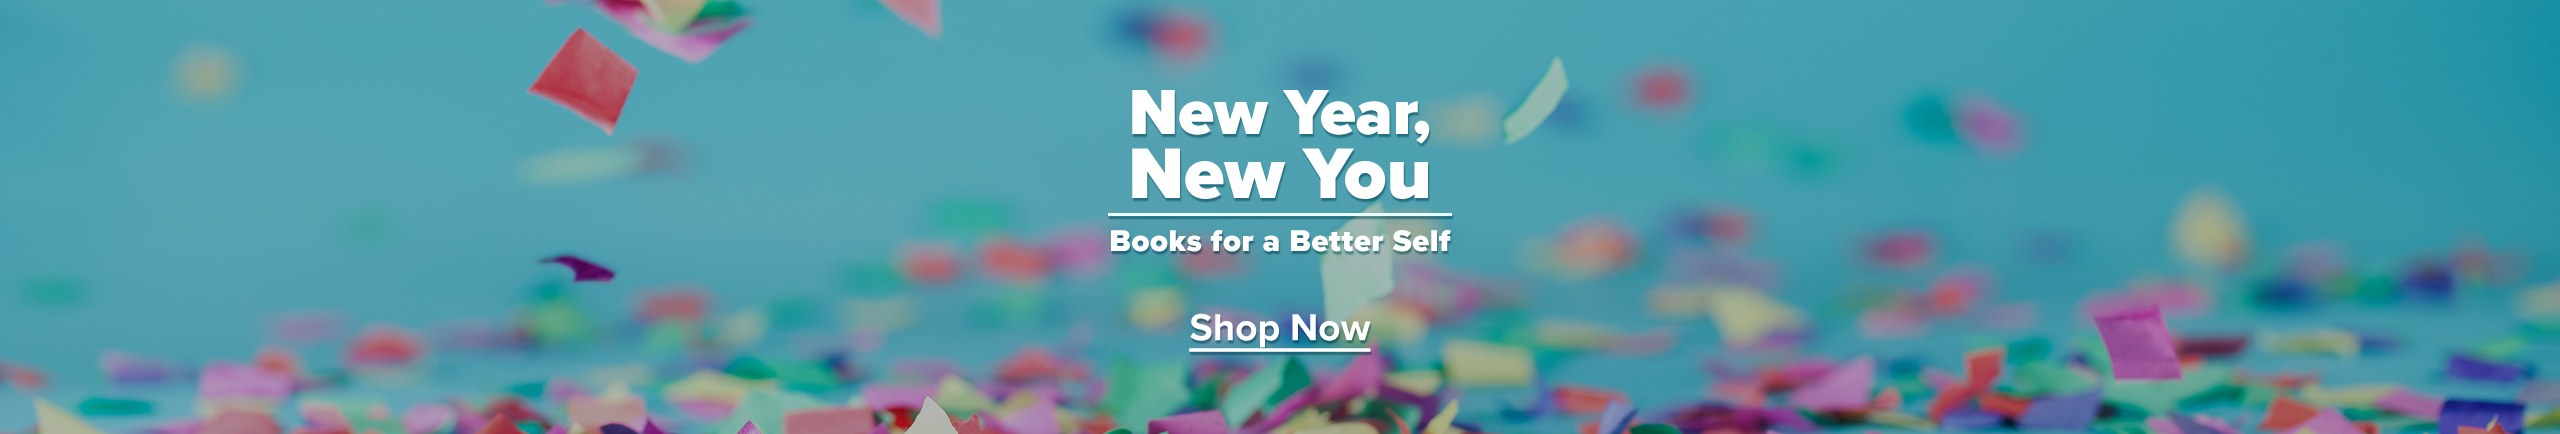 New Year New You Books for a Better Self Shop Now